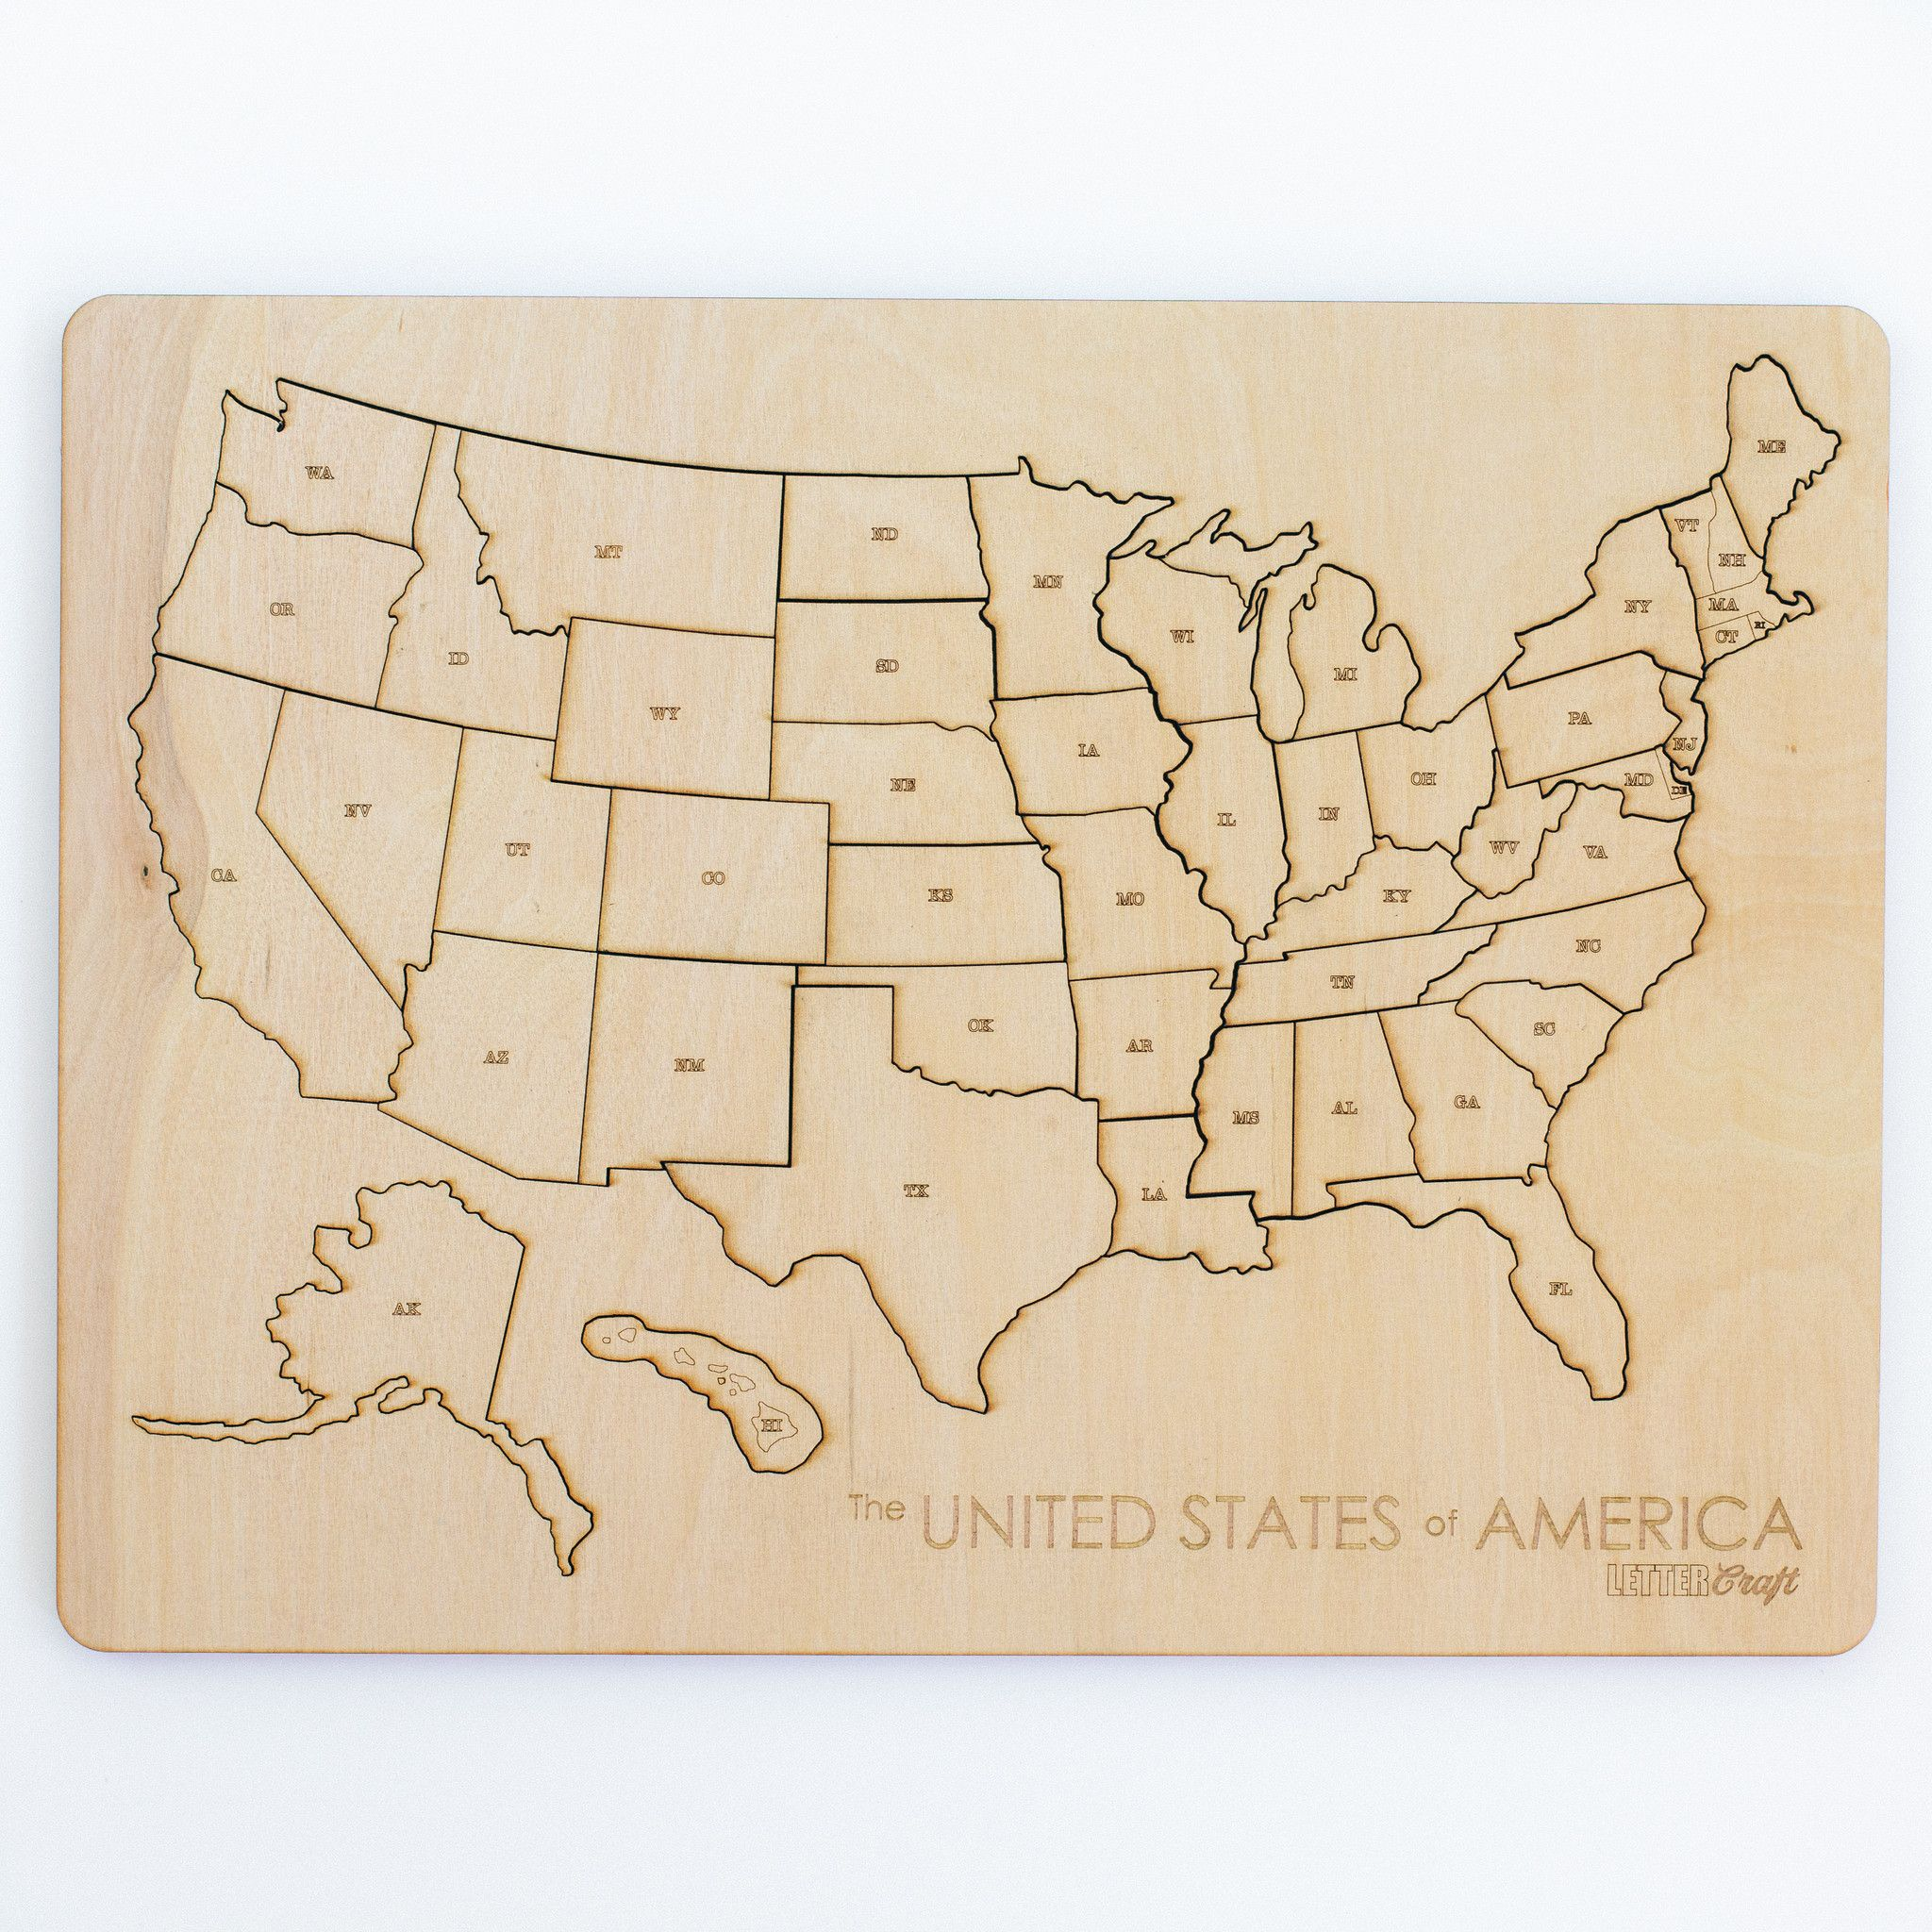 United States Puzzle Letter a crafts, Wood gifts, Handcraft